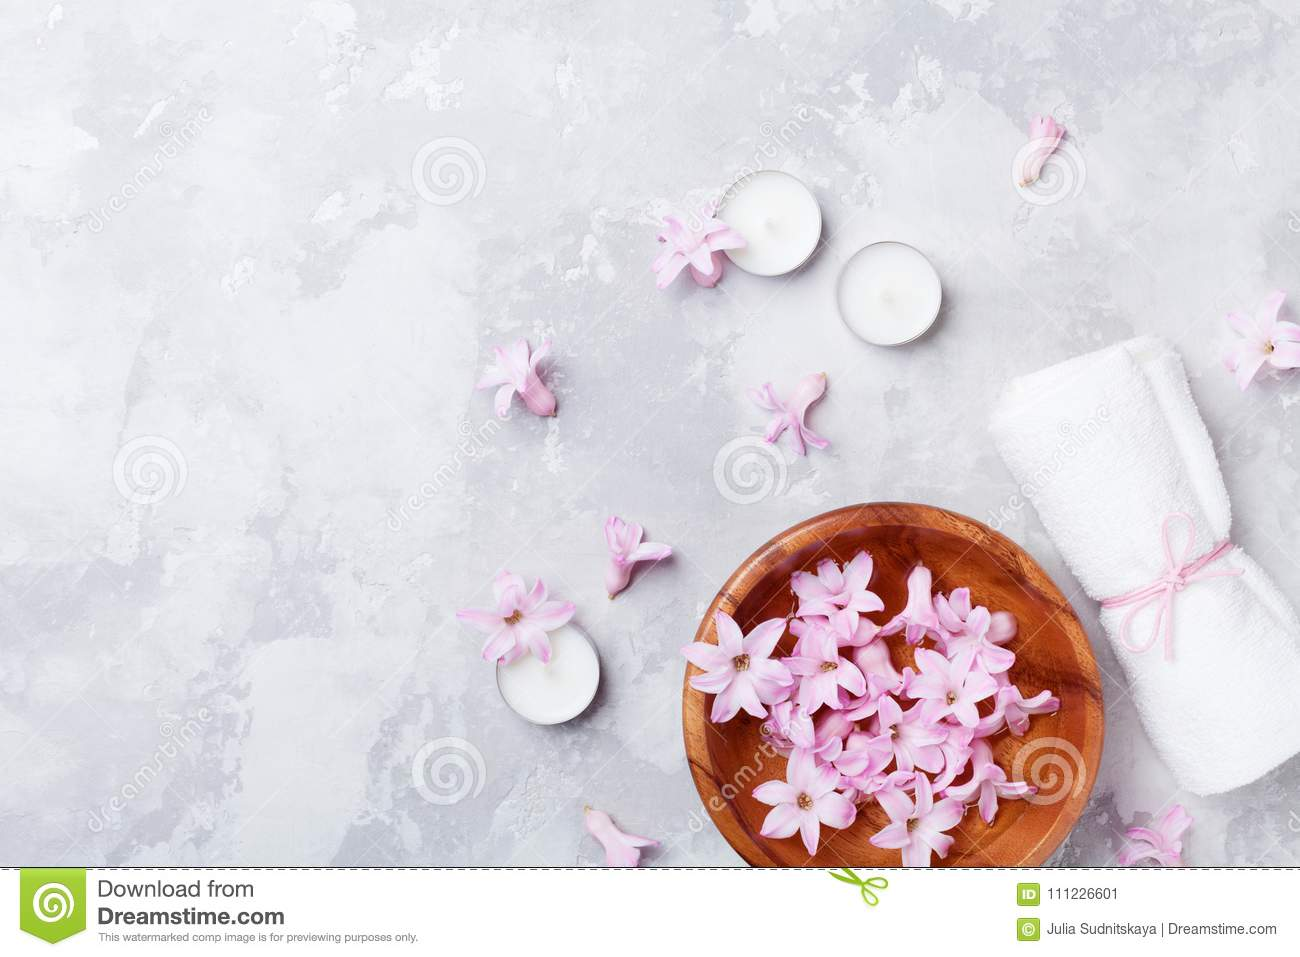 Beauty, aromatherapy and spa background with perfumed pink flowers water in wooden bowl and candles on stone table. Flat lay.